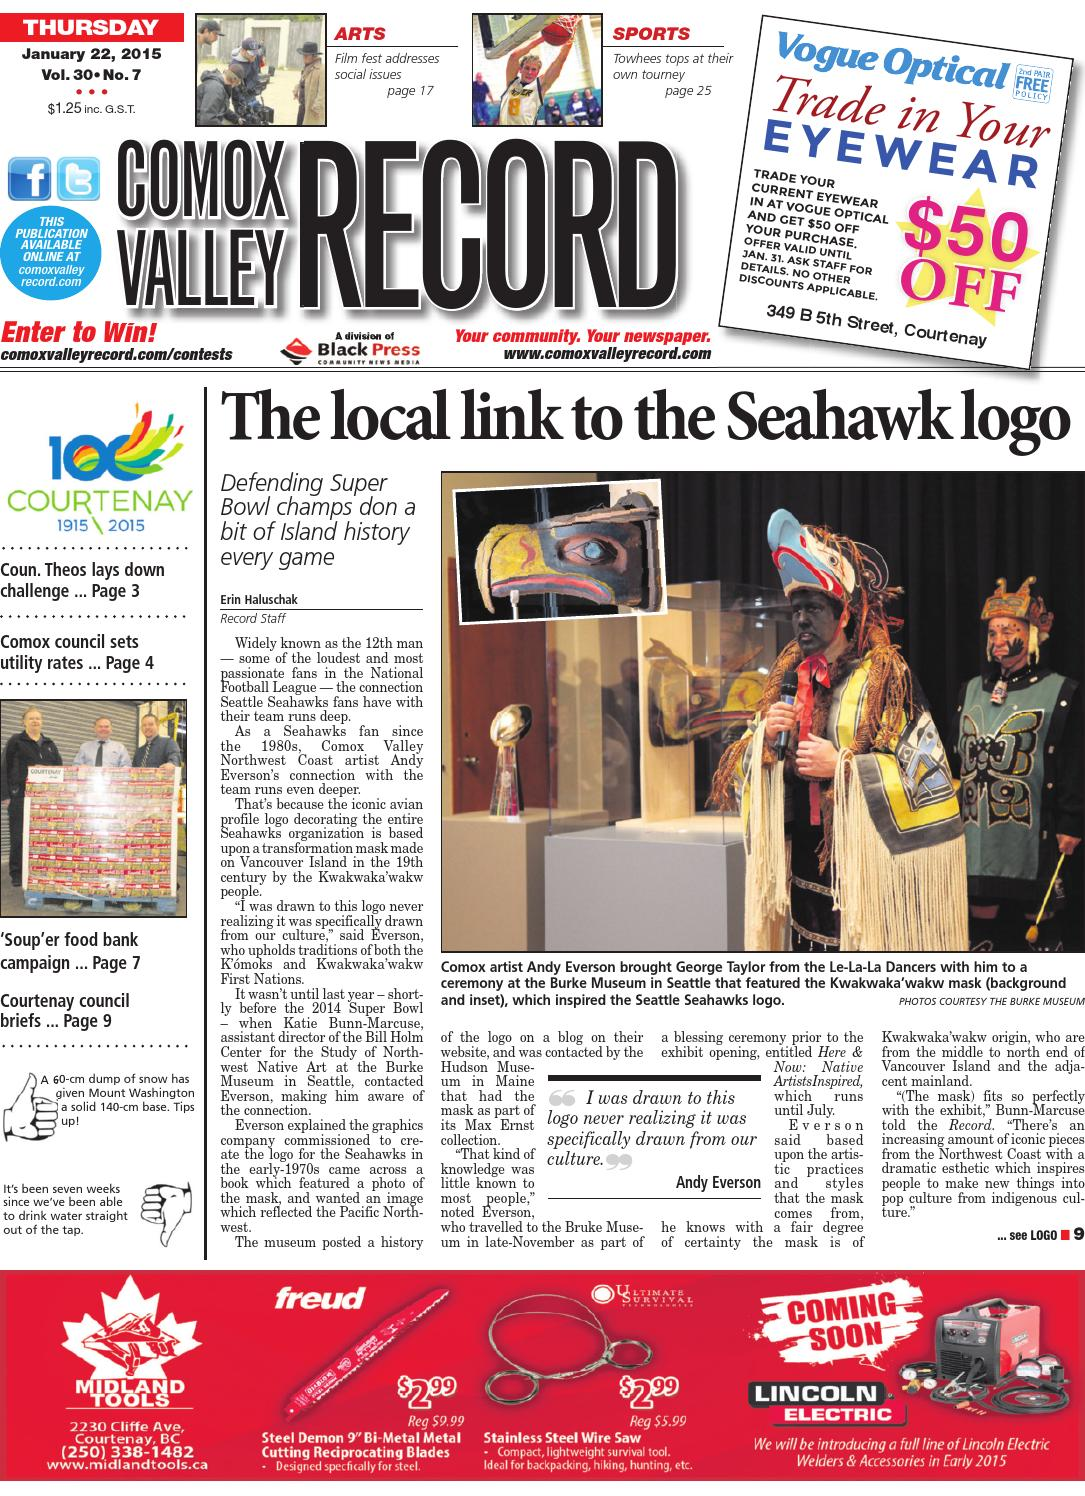 Comox Valley Record, January 22, 2015 by Black Press Media Group - issuu